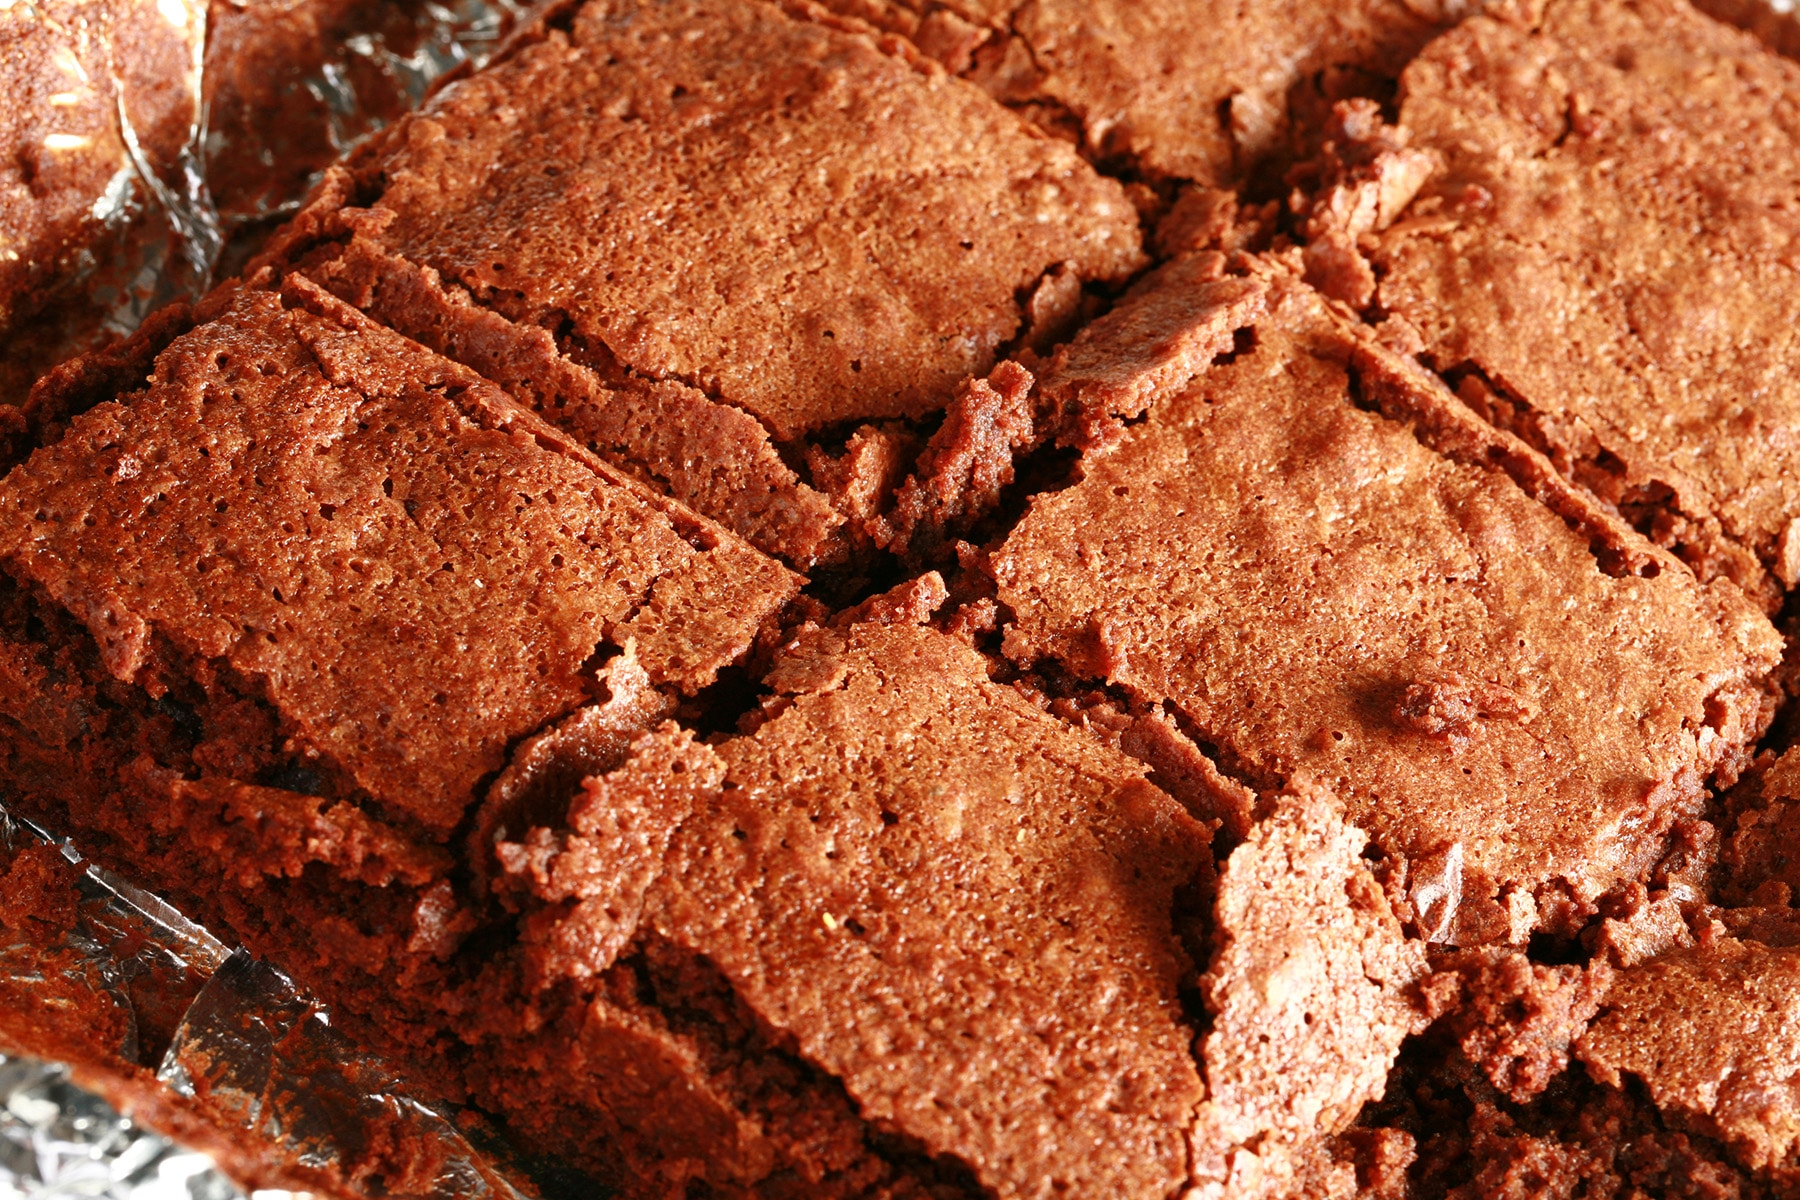 A close up photo of a pan of convention brownies.